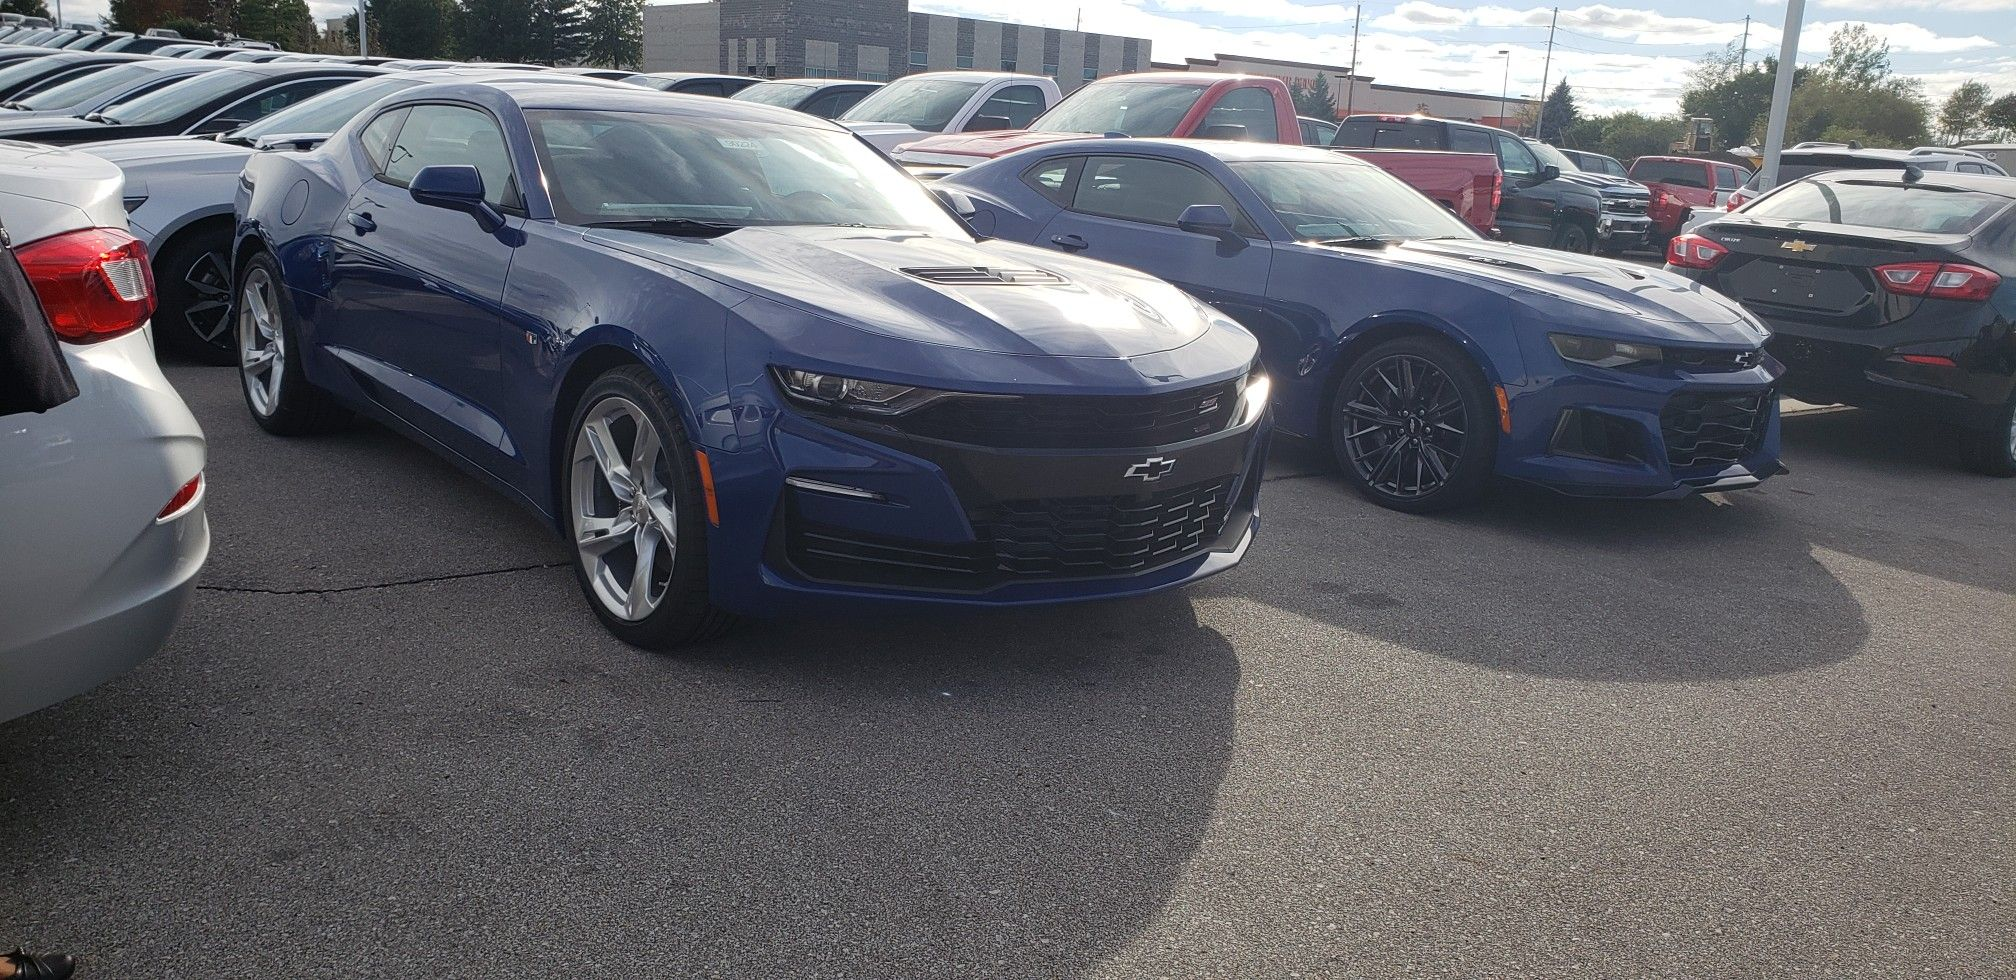 Riverside Blue Metallic 2019 Chevrolet Camaro Ss Zl1 Transporter